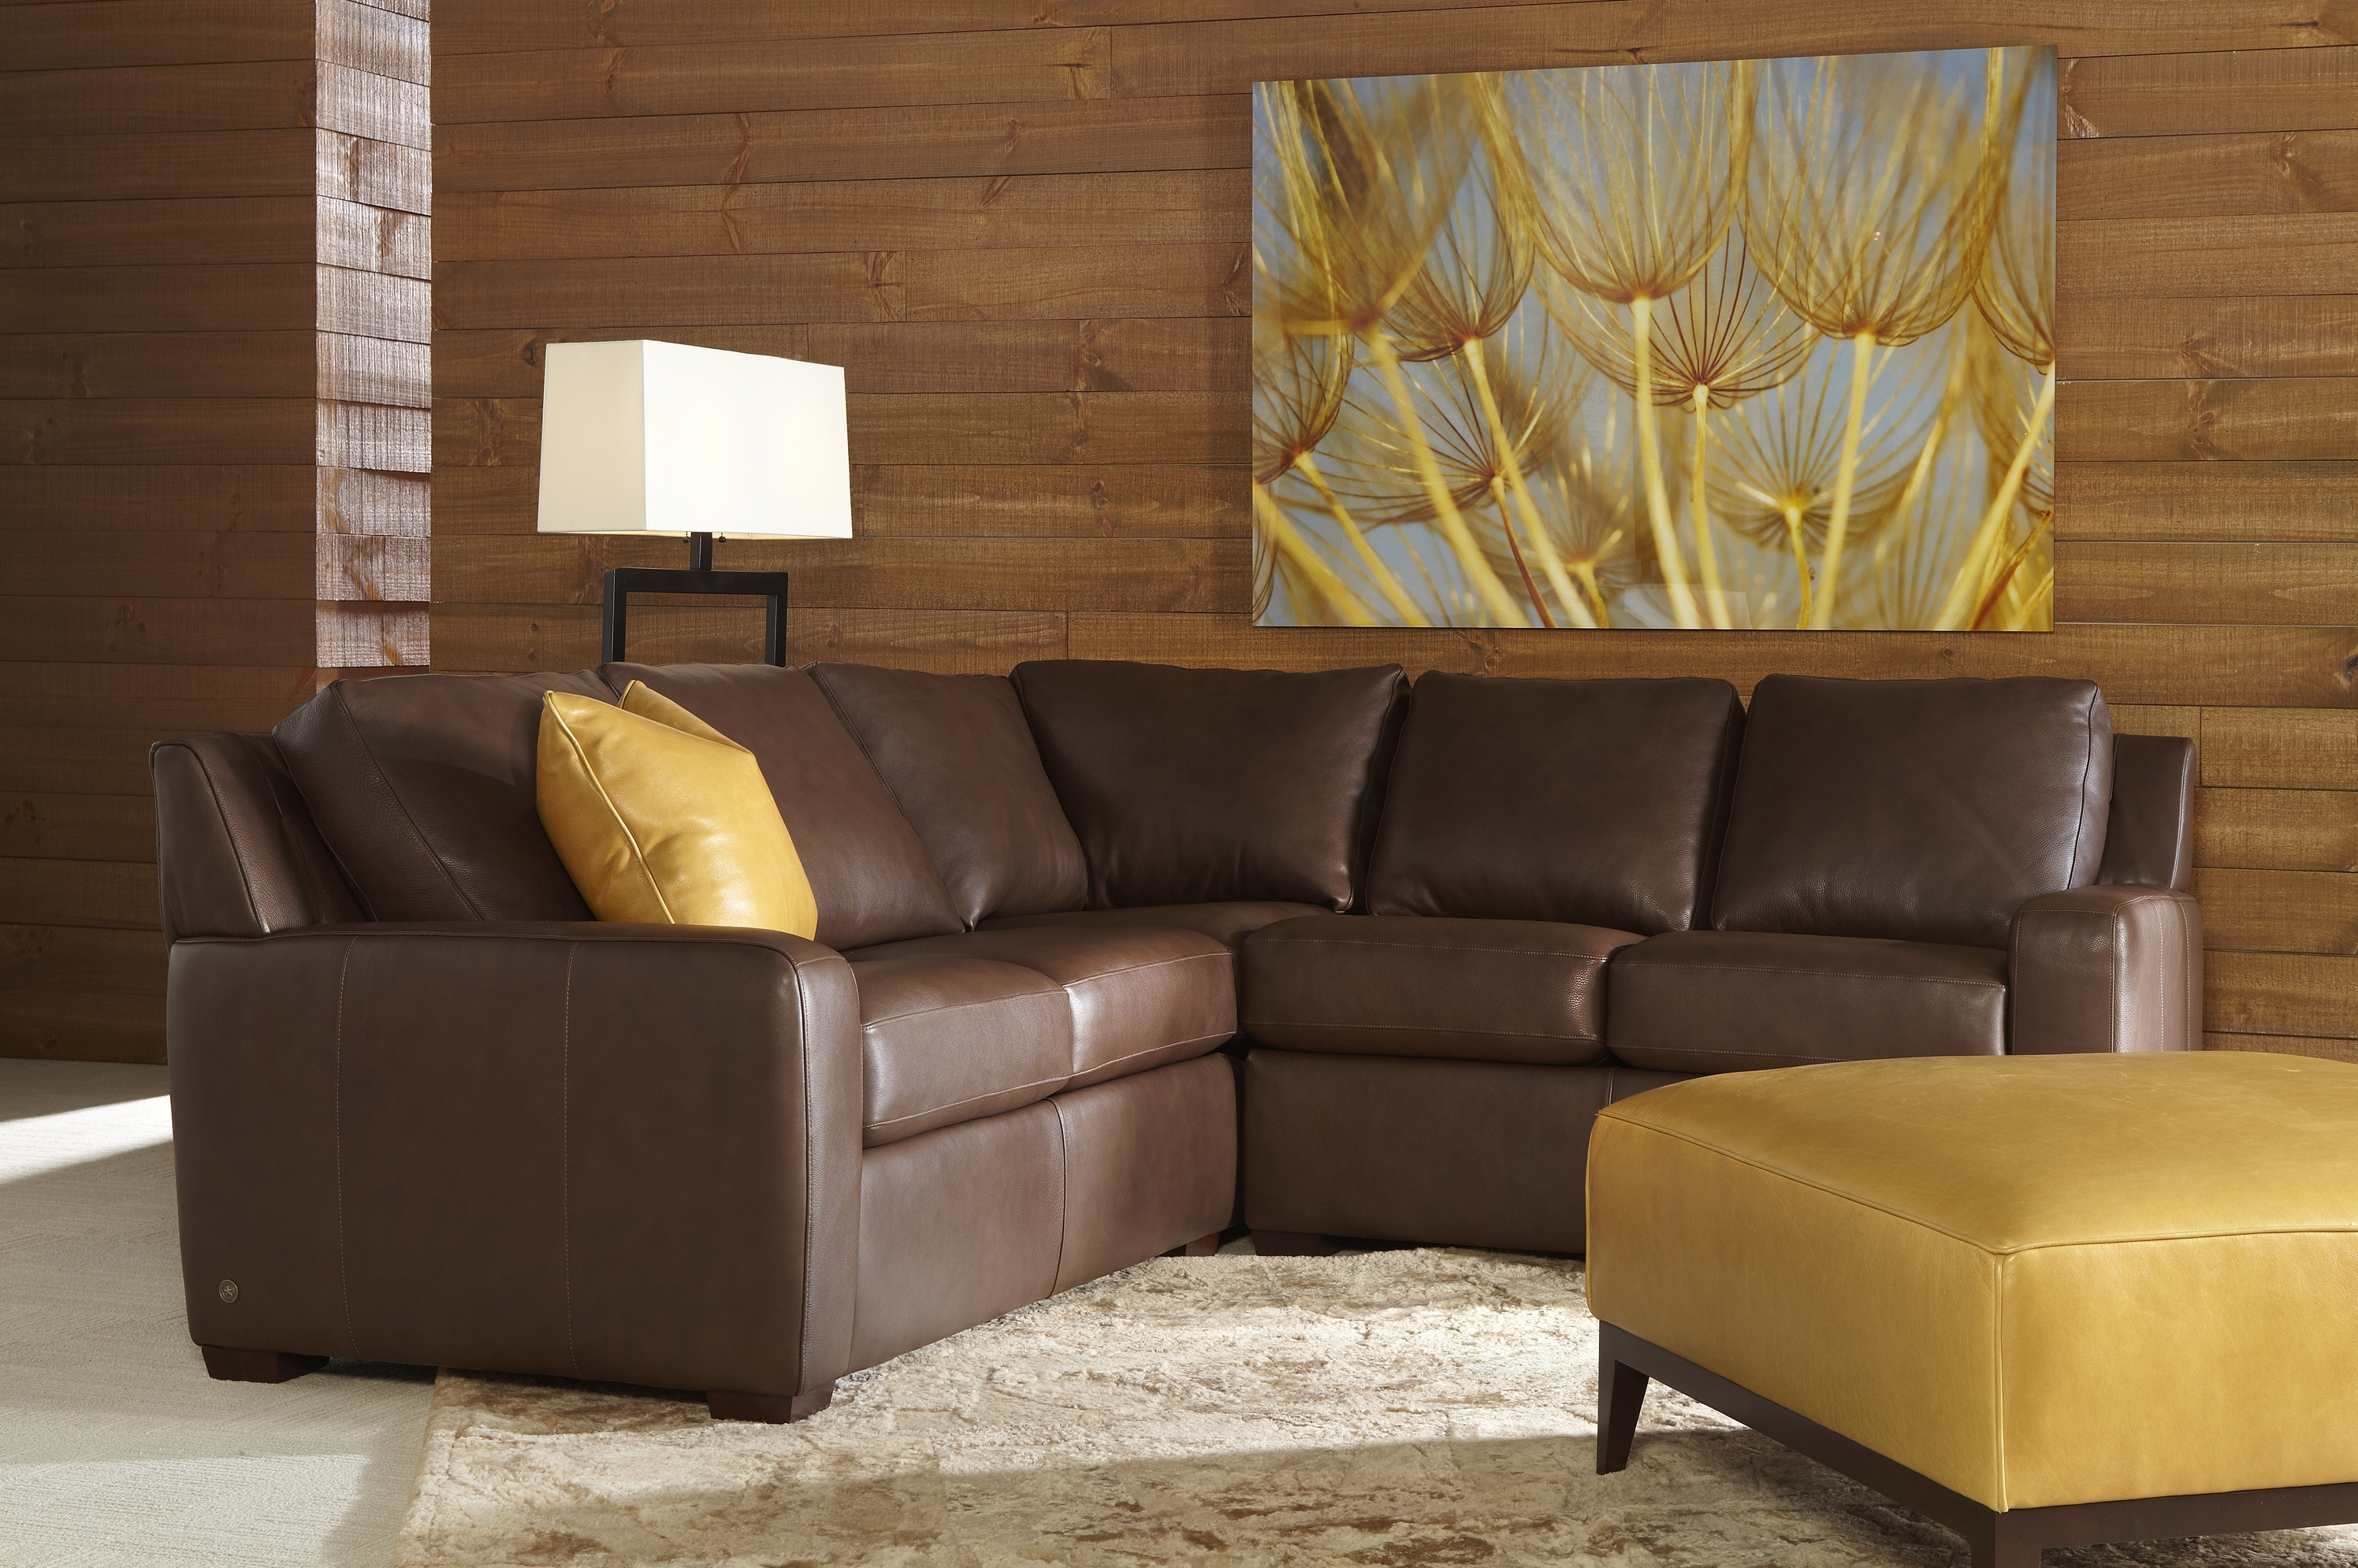 Jordans Sectional Sofas Throughout 2019 Sectional Sofas – Elegance And Style Tailored Just For Youand (View 13 of 20)